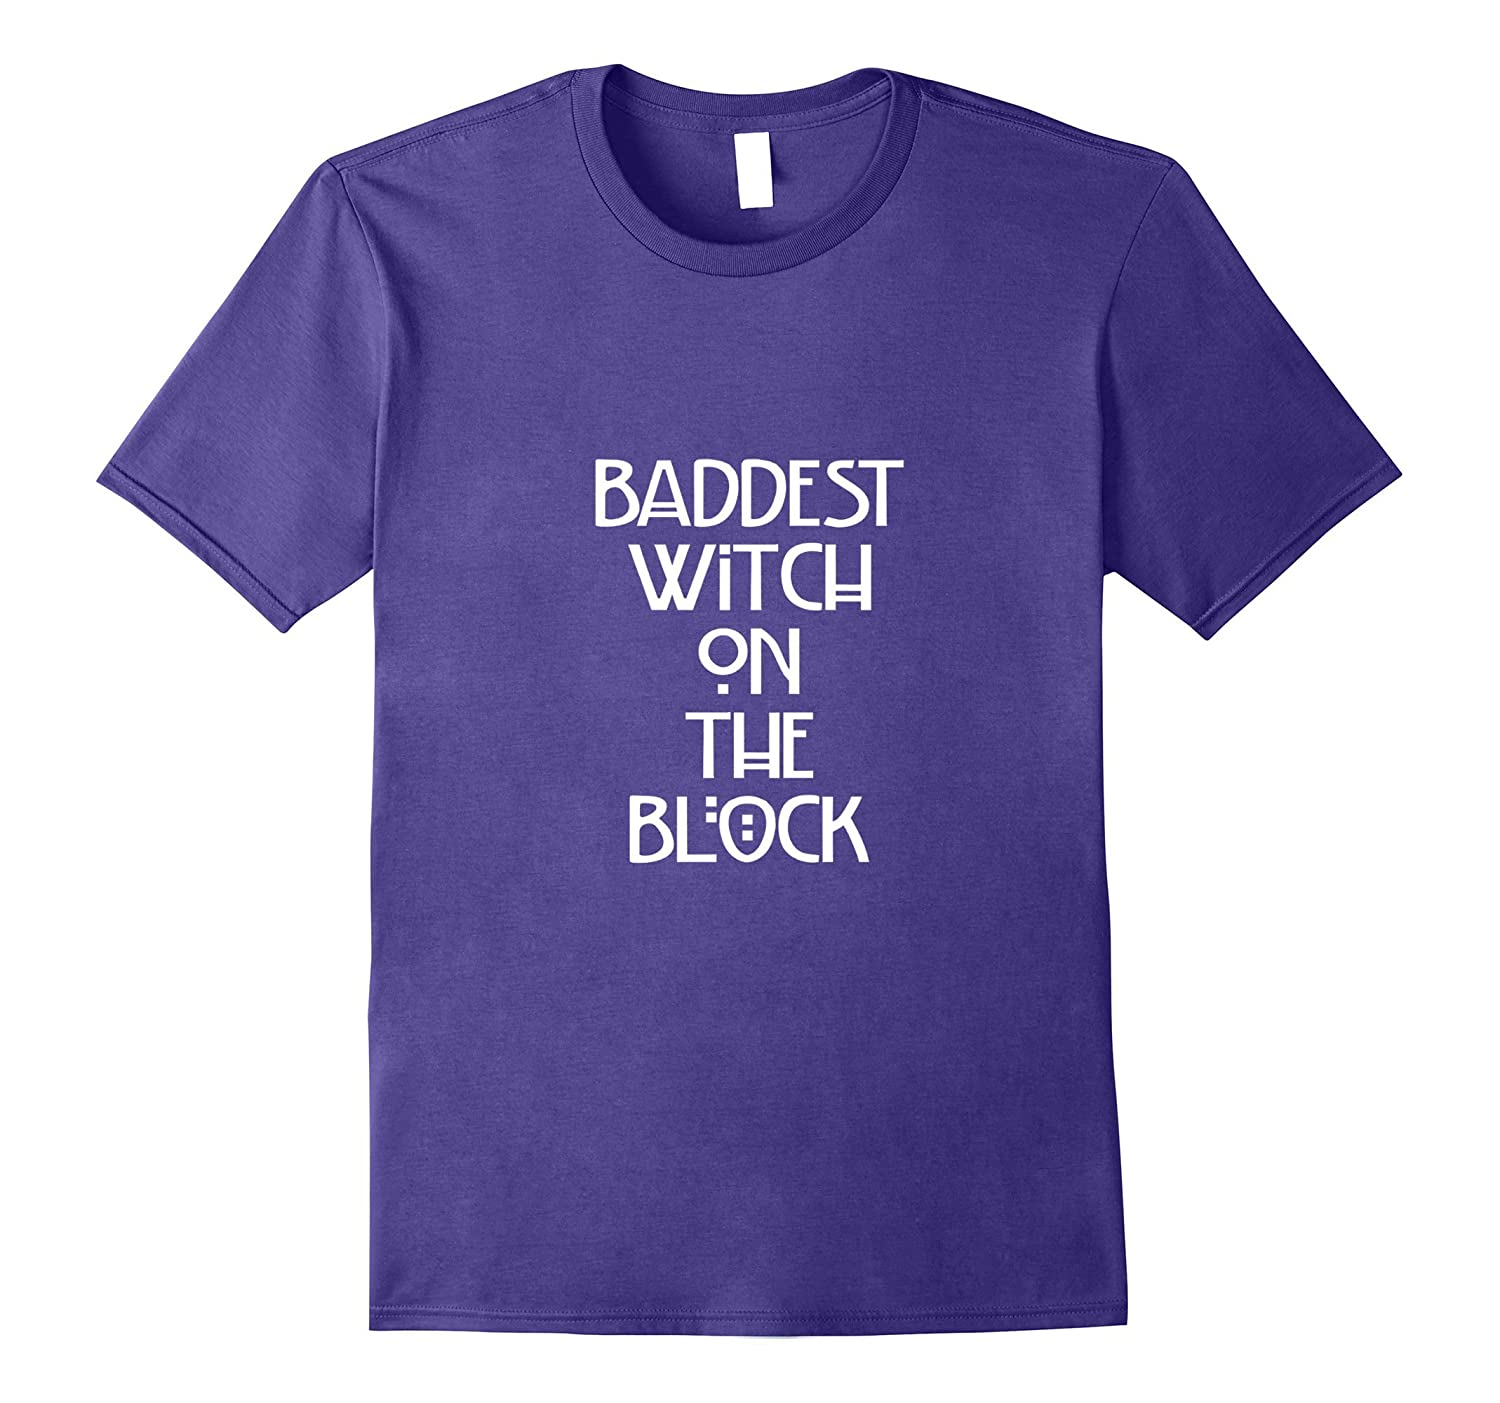 Baddest witch on the block Tshirt Easy DIY Halloween Costume-T-Shirt